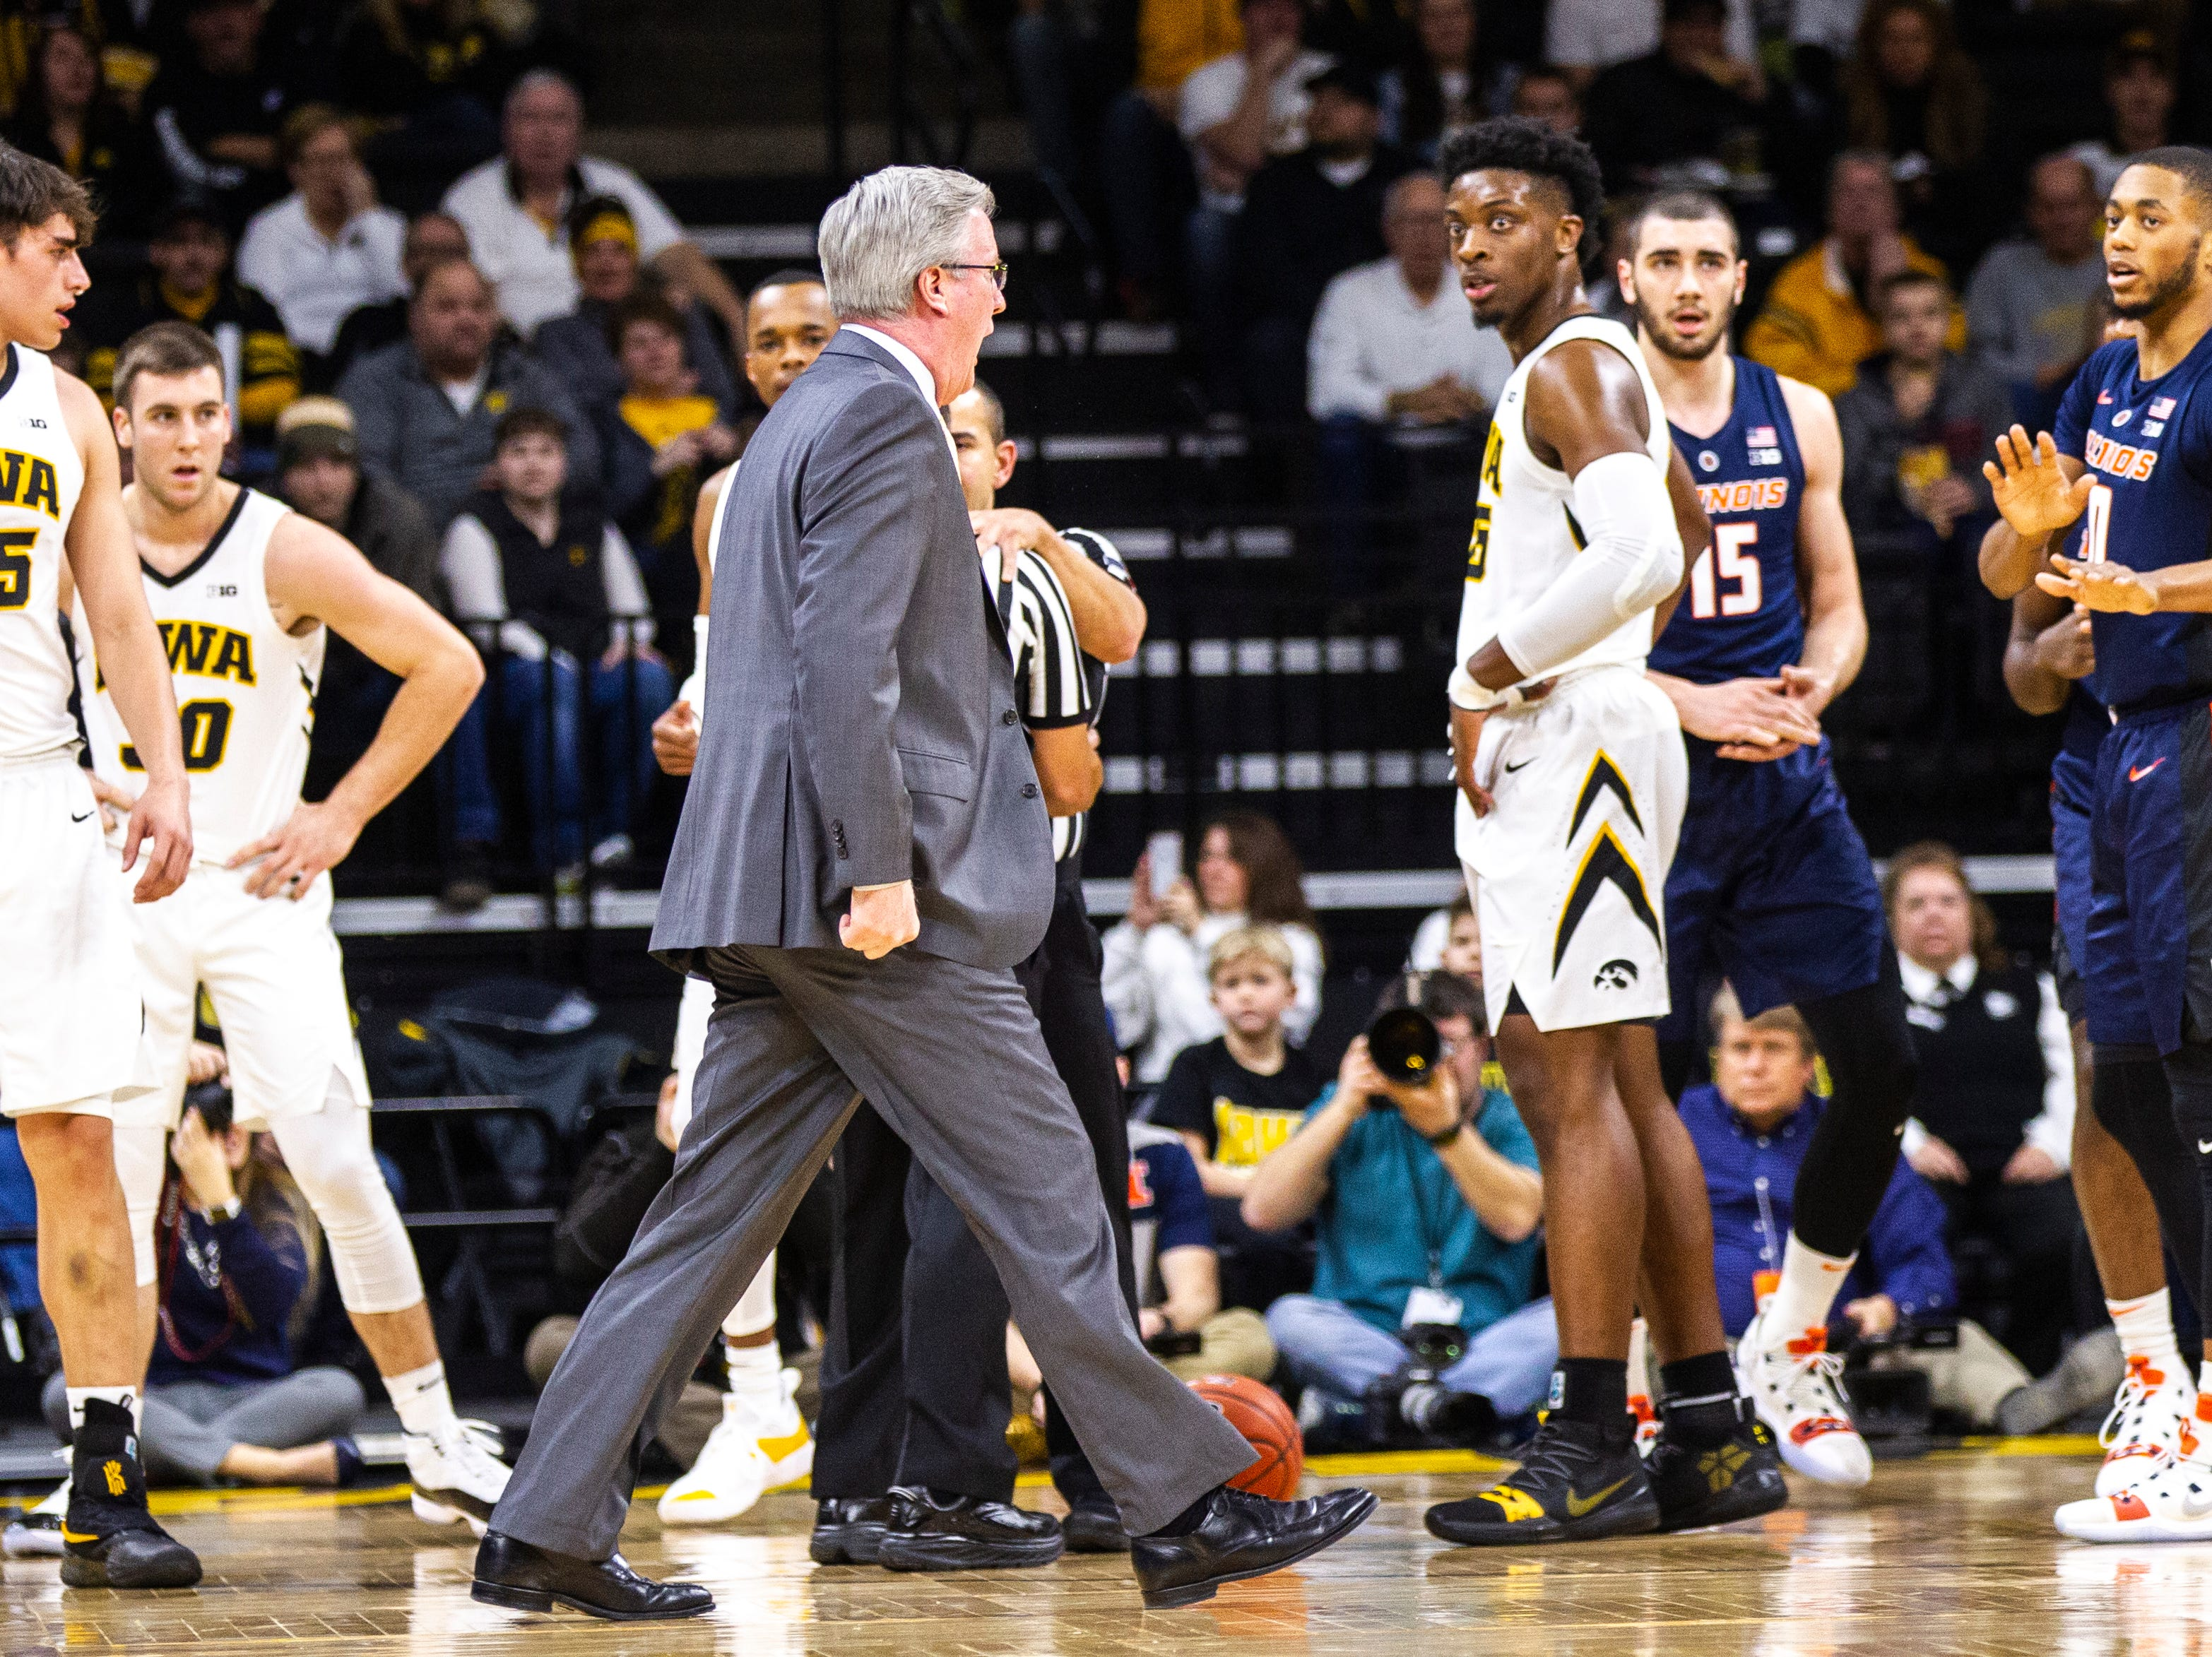 Iowa men's basketball head coach Fran McCaffery yells while walking out on the court following a jump ball during a NCAA Big Ten Conference men's basketball game on Sunday, Jan. 20, 2019, at Carver-Hawkeye Arena in Iowa City, Iowa.